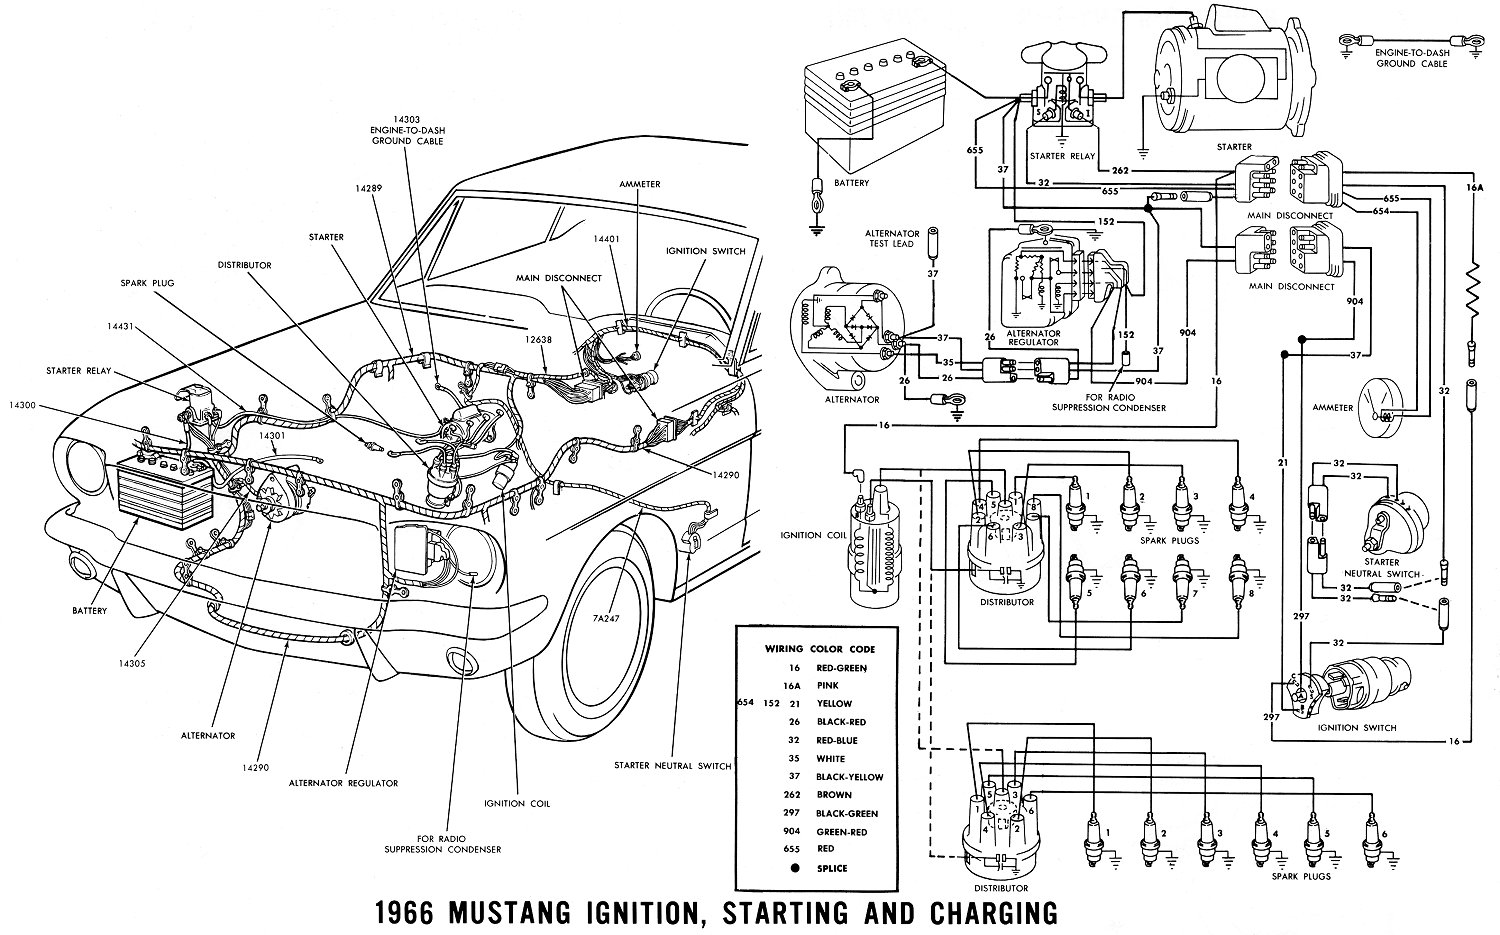 Schematics h together with 1113981 1979 F 150 Wiring Diagram additionally Chevy Tahoe Wheel Diagram further 1966 Mustang Ignition Wiring Diagram furthermore 2rvs9 Help Wiring 1968 Chevelle Malibu Brake Lights. on 1983 chevy el camino fuse box